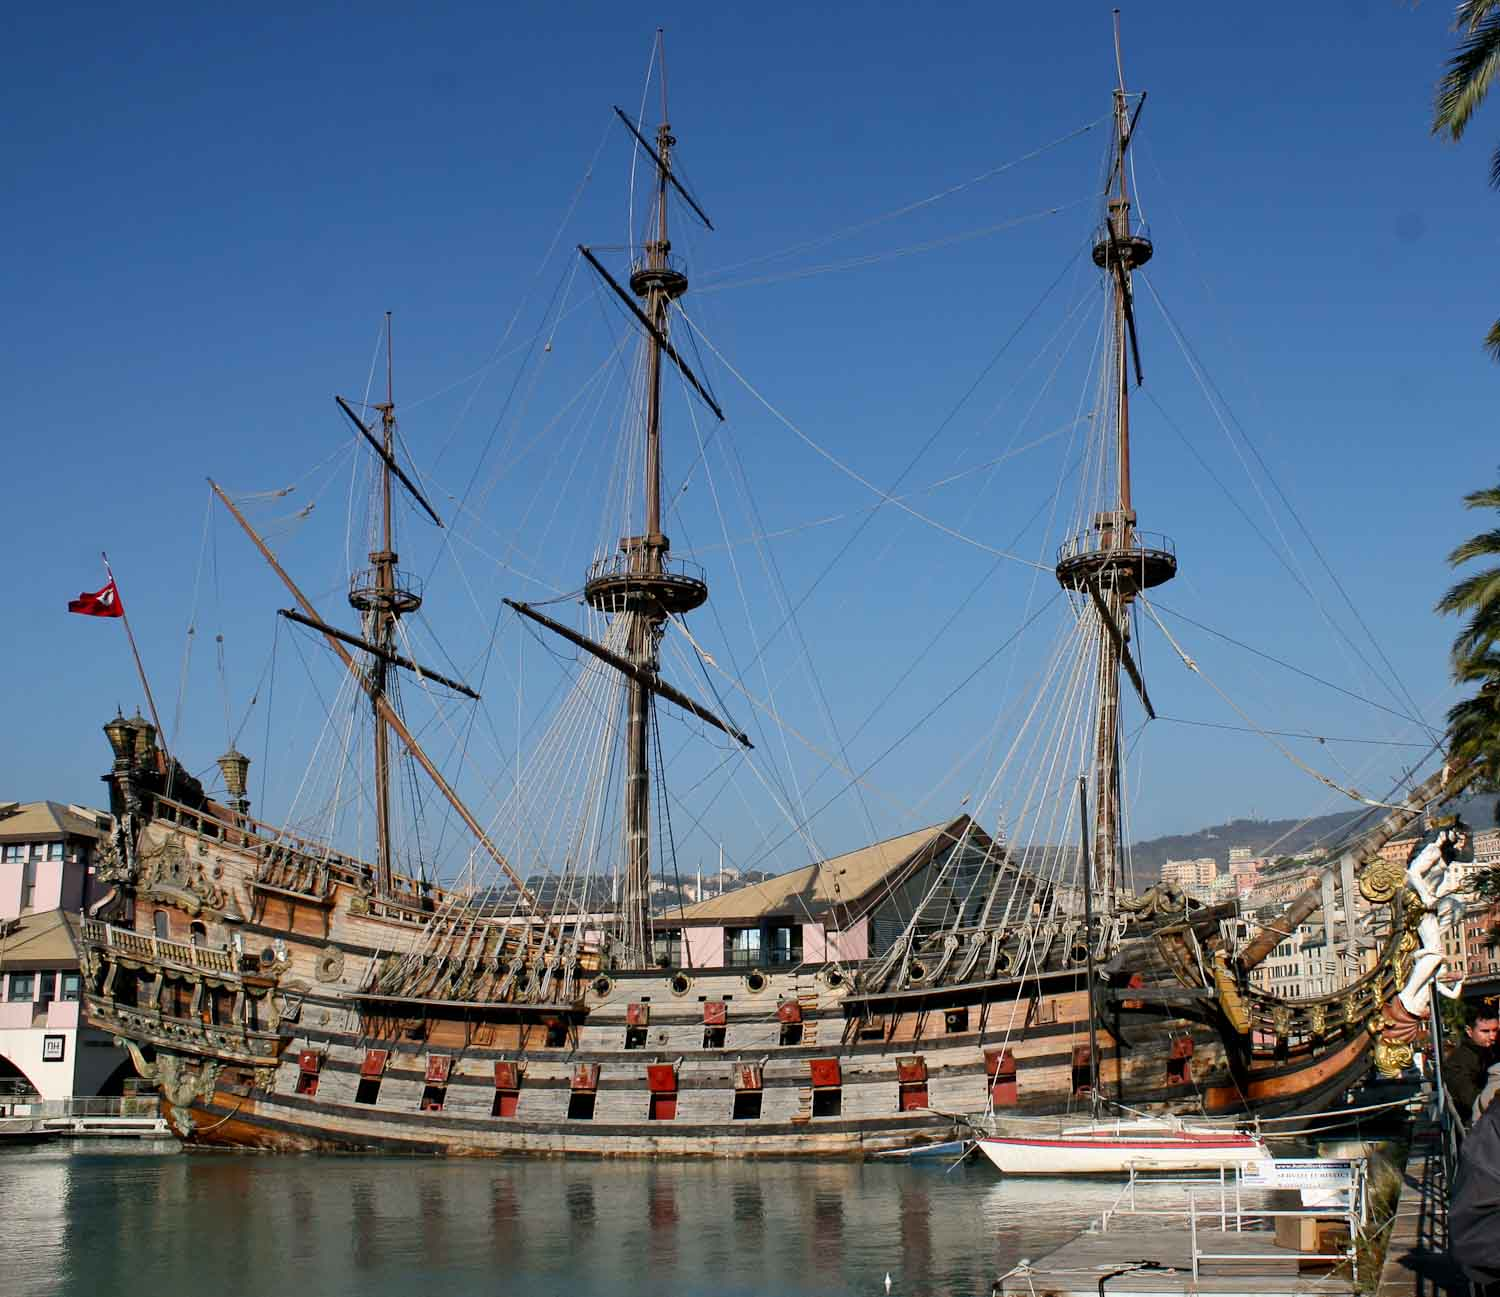 Galleon in the harbour of Genoa